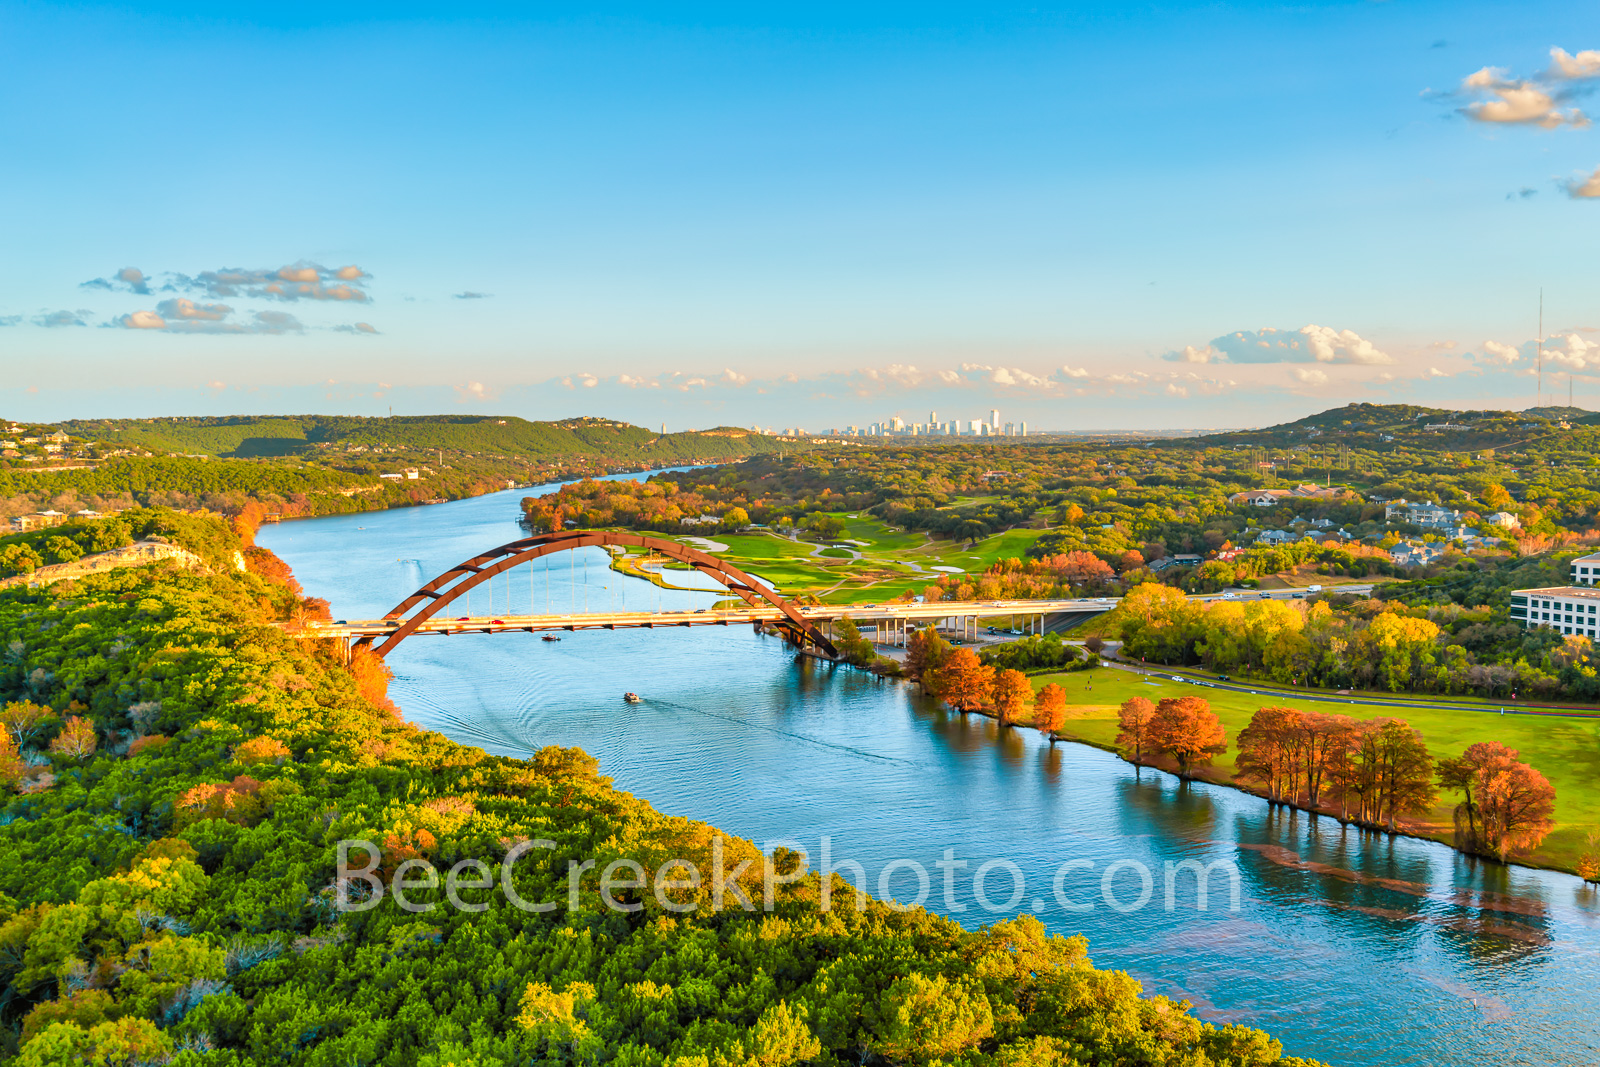 texas, austin texas, austin pennybacker bridge, austin 360 bridge, austin tx, city of austin, lake austin, 360 bridge, bald cypress, fall, autumn, reflections, austin skyline, downtown austin, fall co, photo